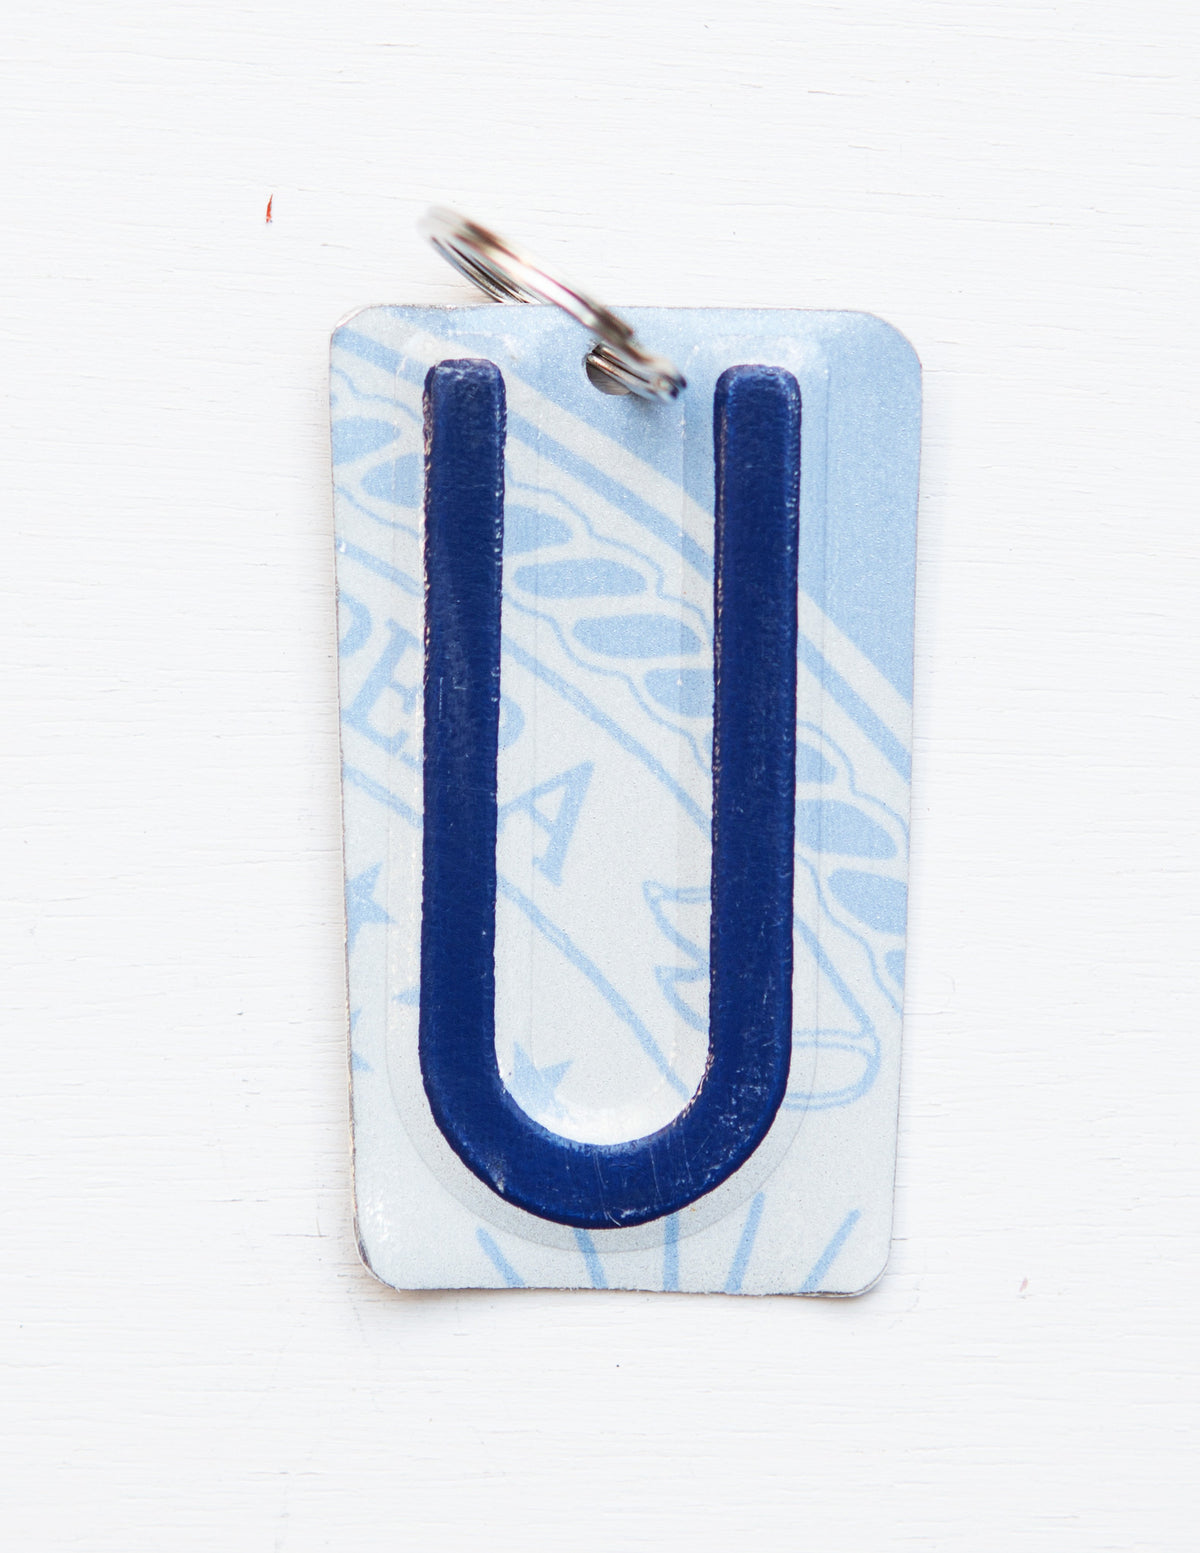 LETTER U KEY CHAIN  Recycled License Plate Key Chain - Unique Pl8z